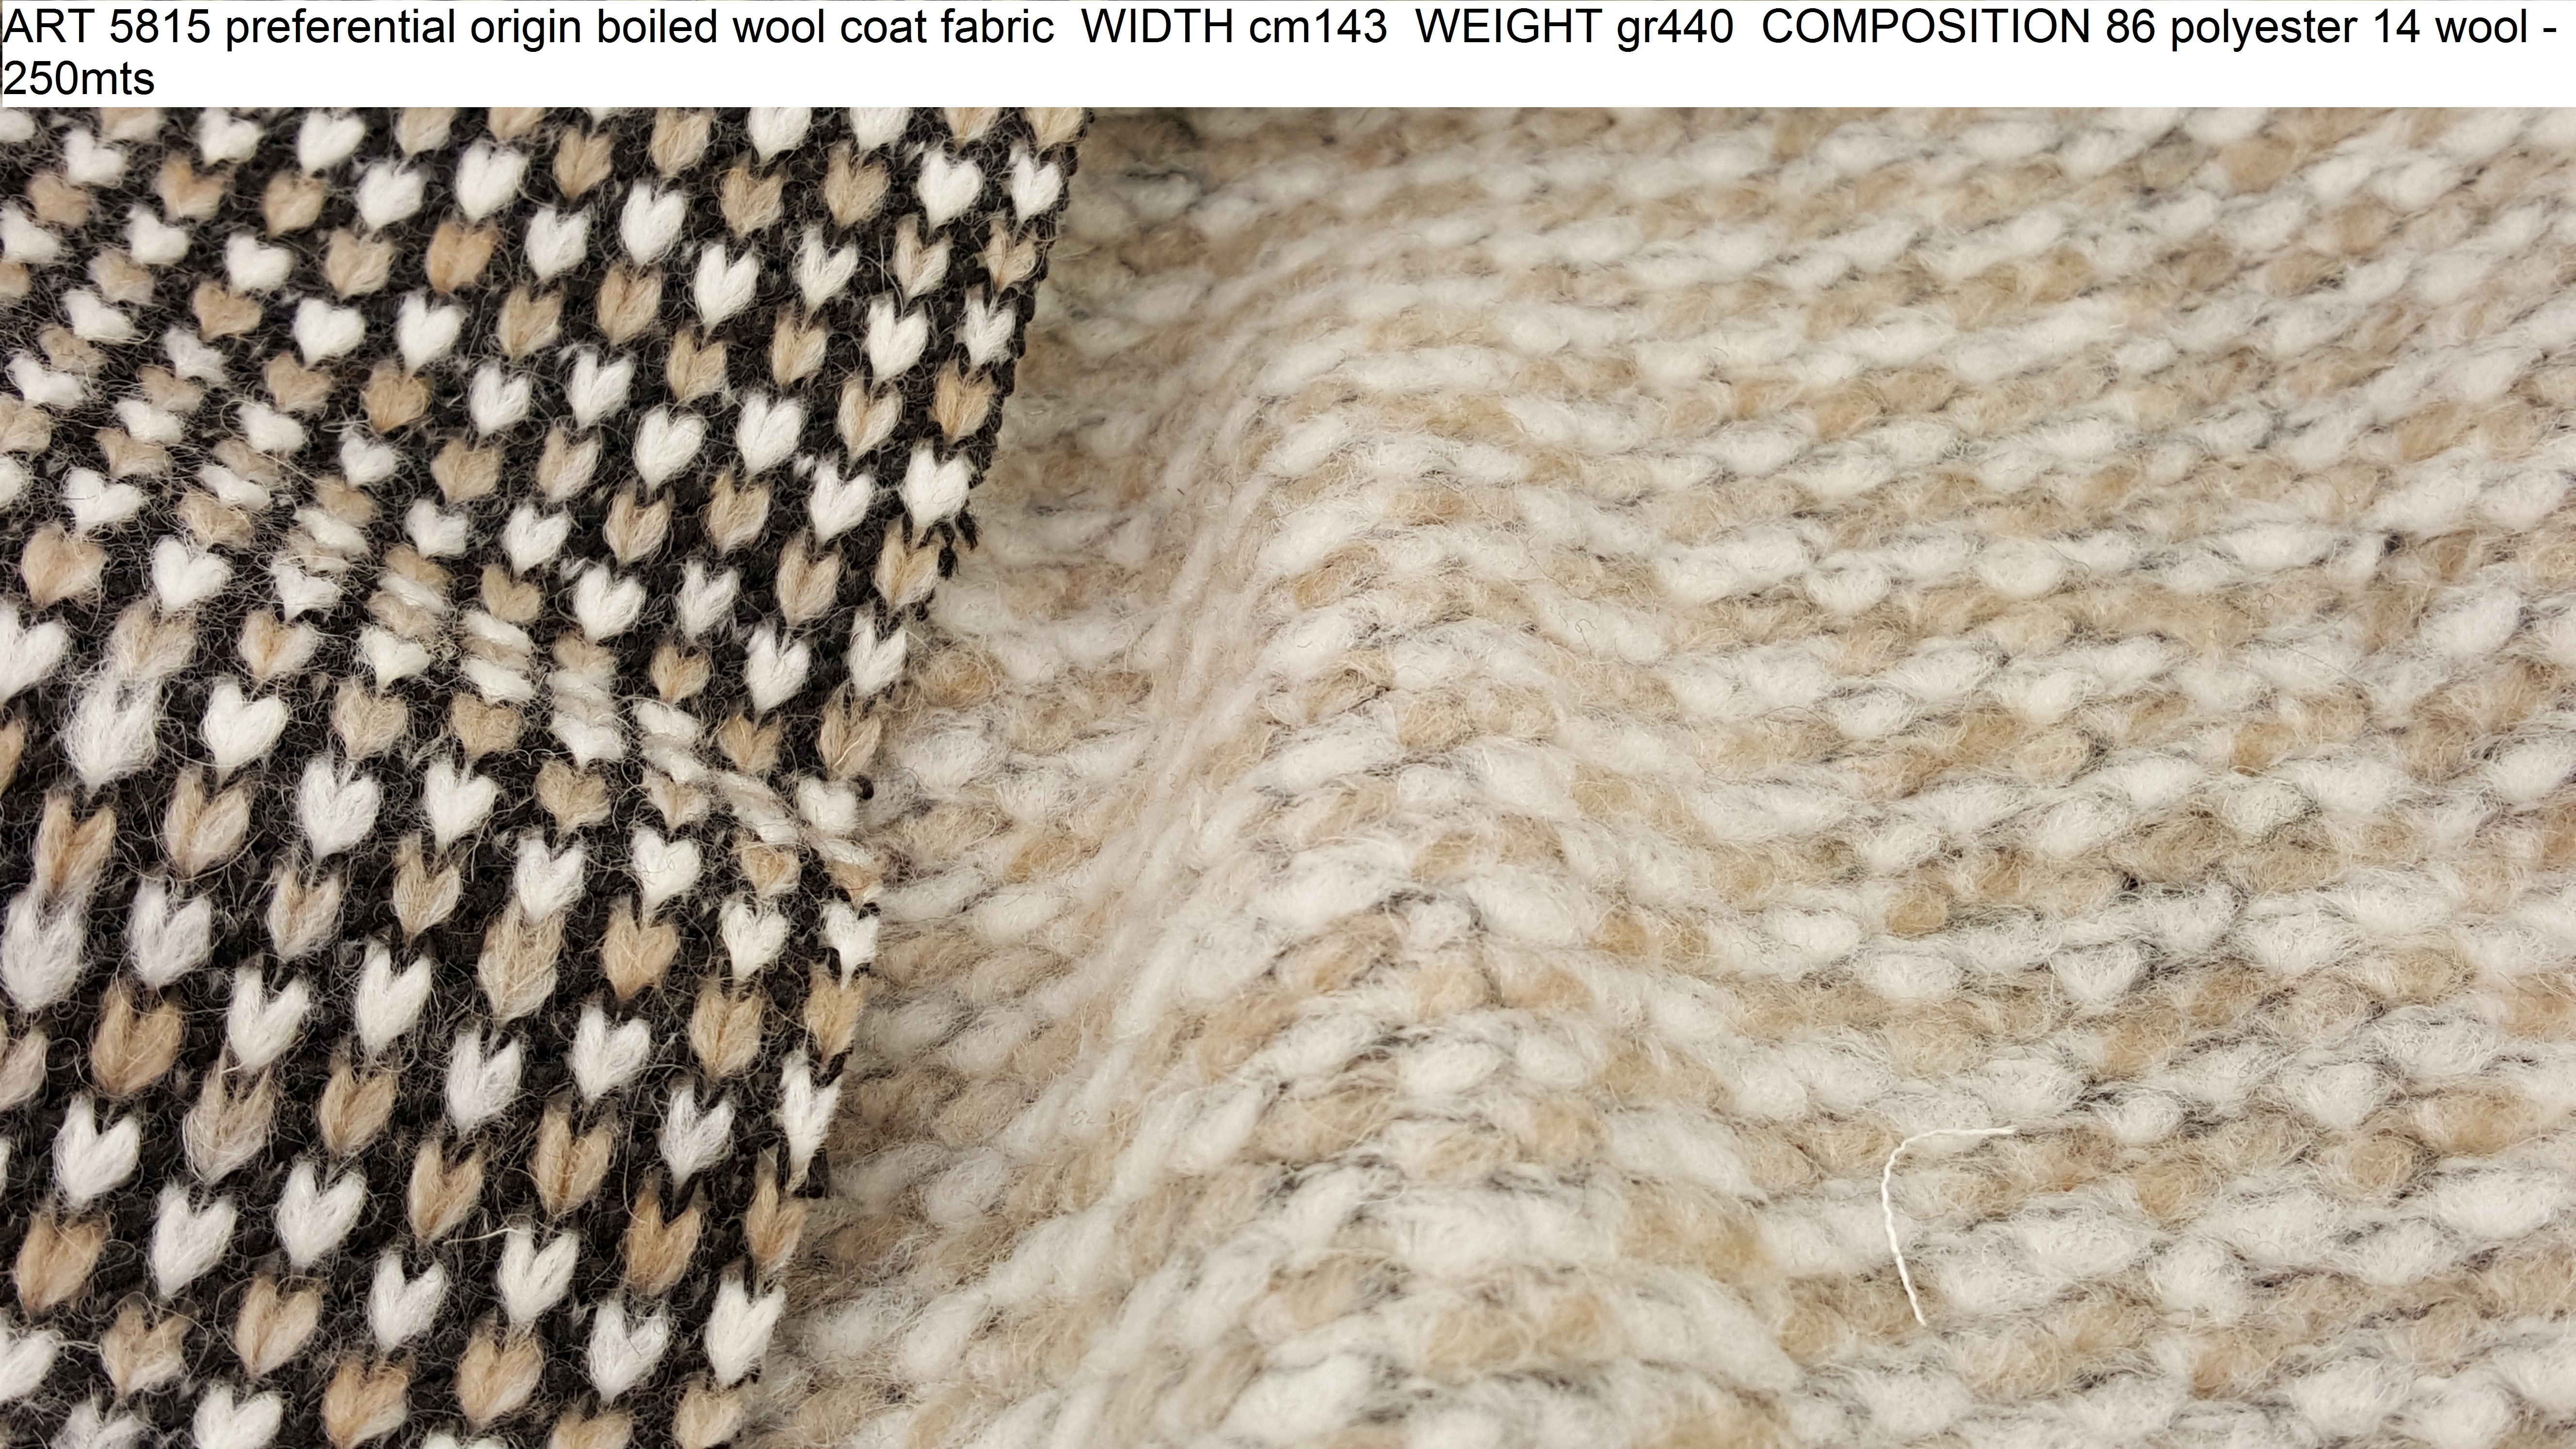 ART 5815 preferential origin boiled wool coat fabric WIDTH cm143 WEIGHT gr440 COMPOSITION 86 polyester 14 wool - 250mts